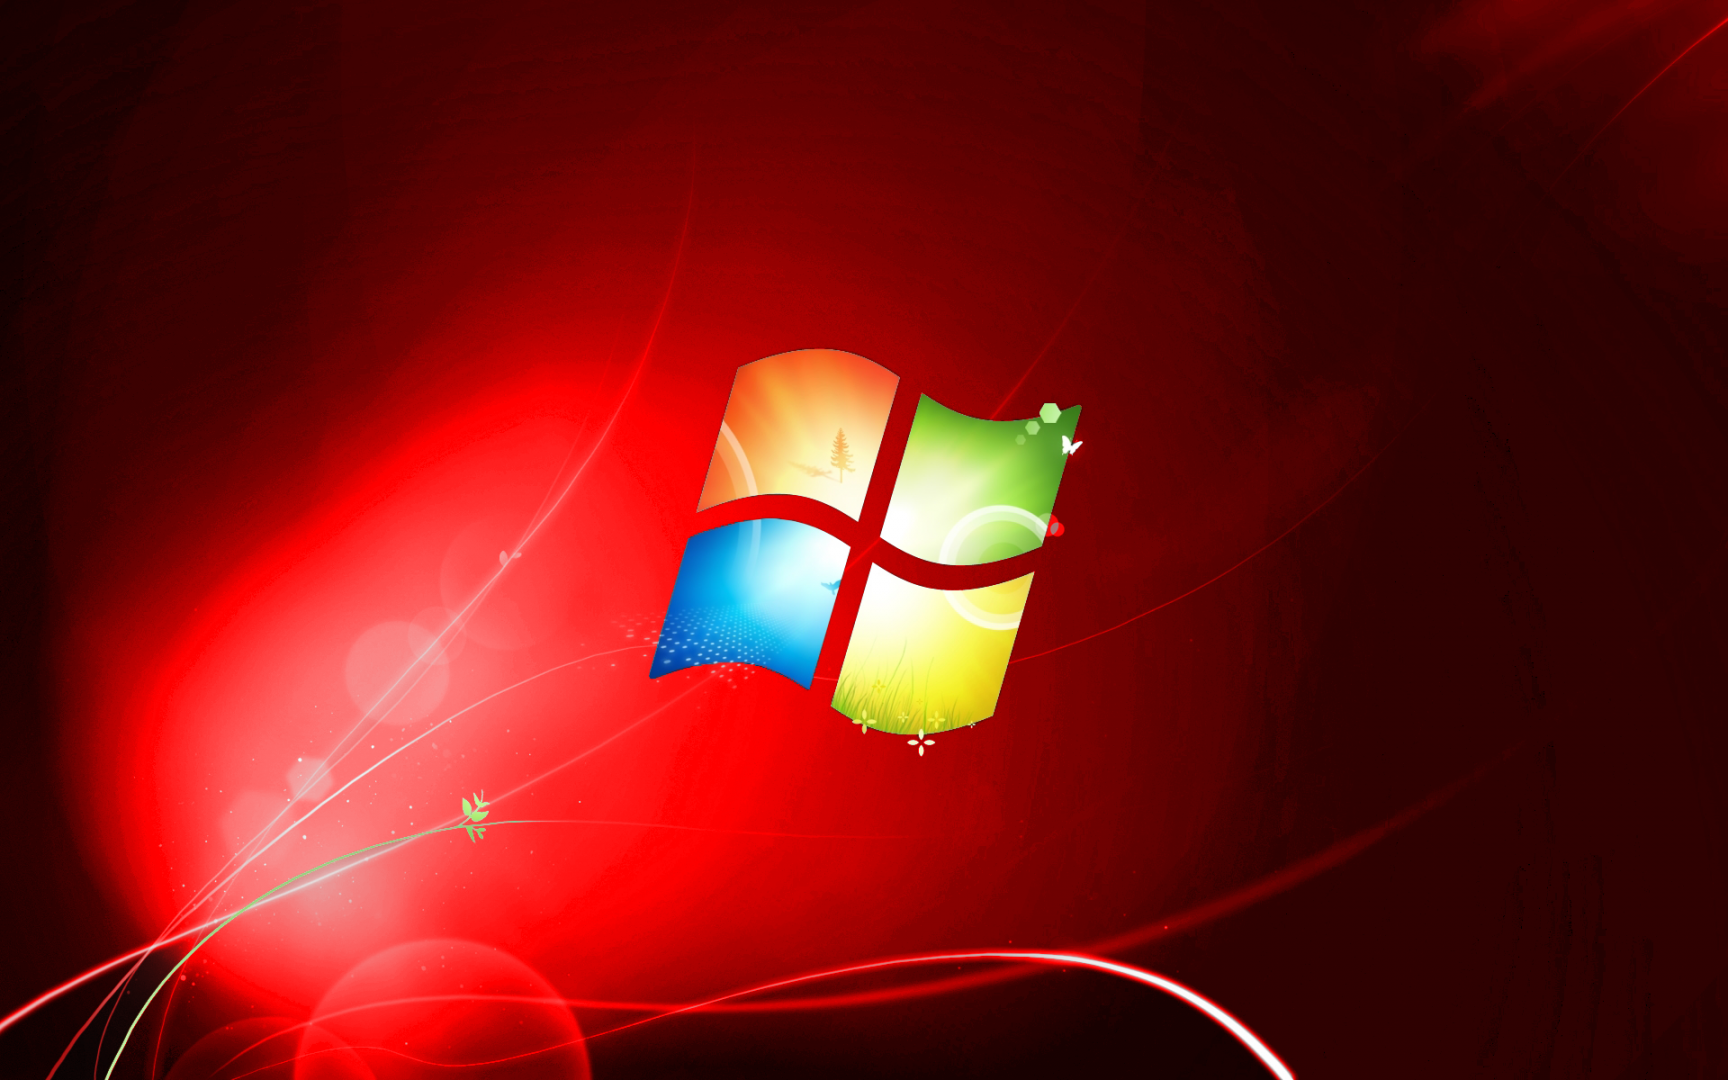 Windows_7_RED_Wallpaper_by_DaBestFox.png